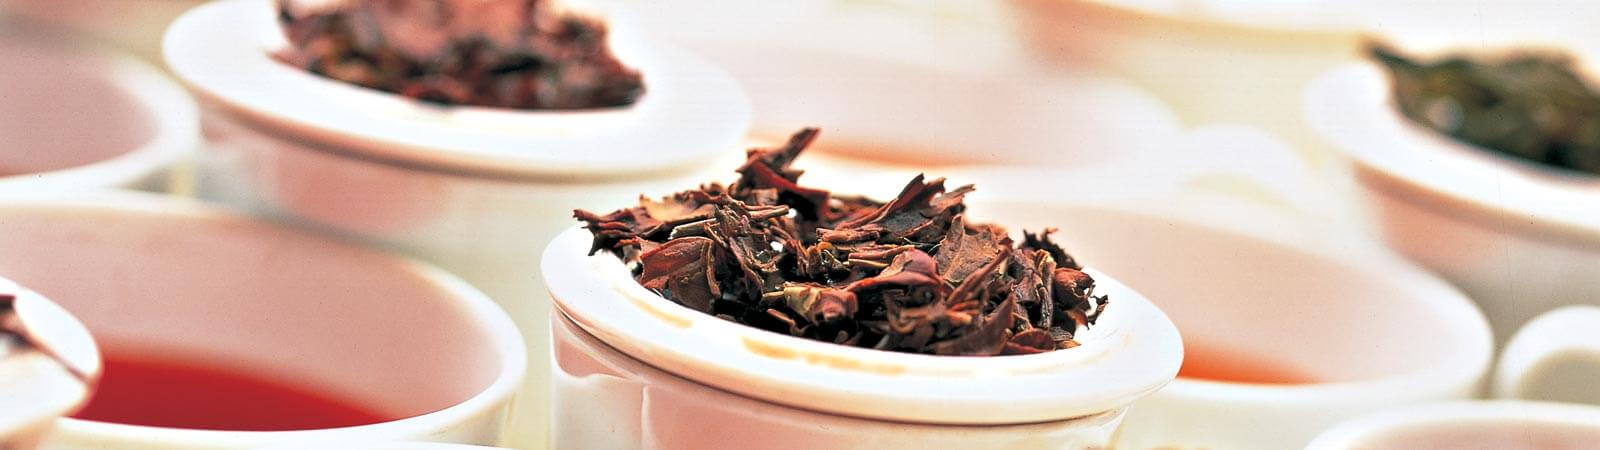 Superior quality Ceylon tea to blenders and packers worldwide